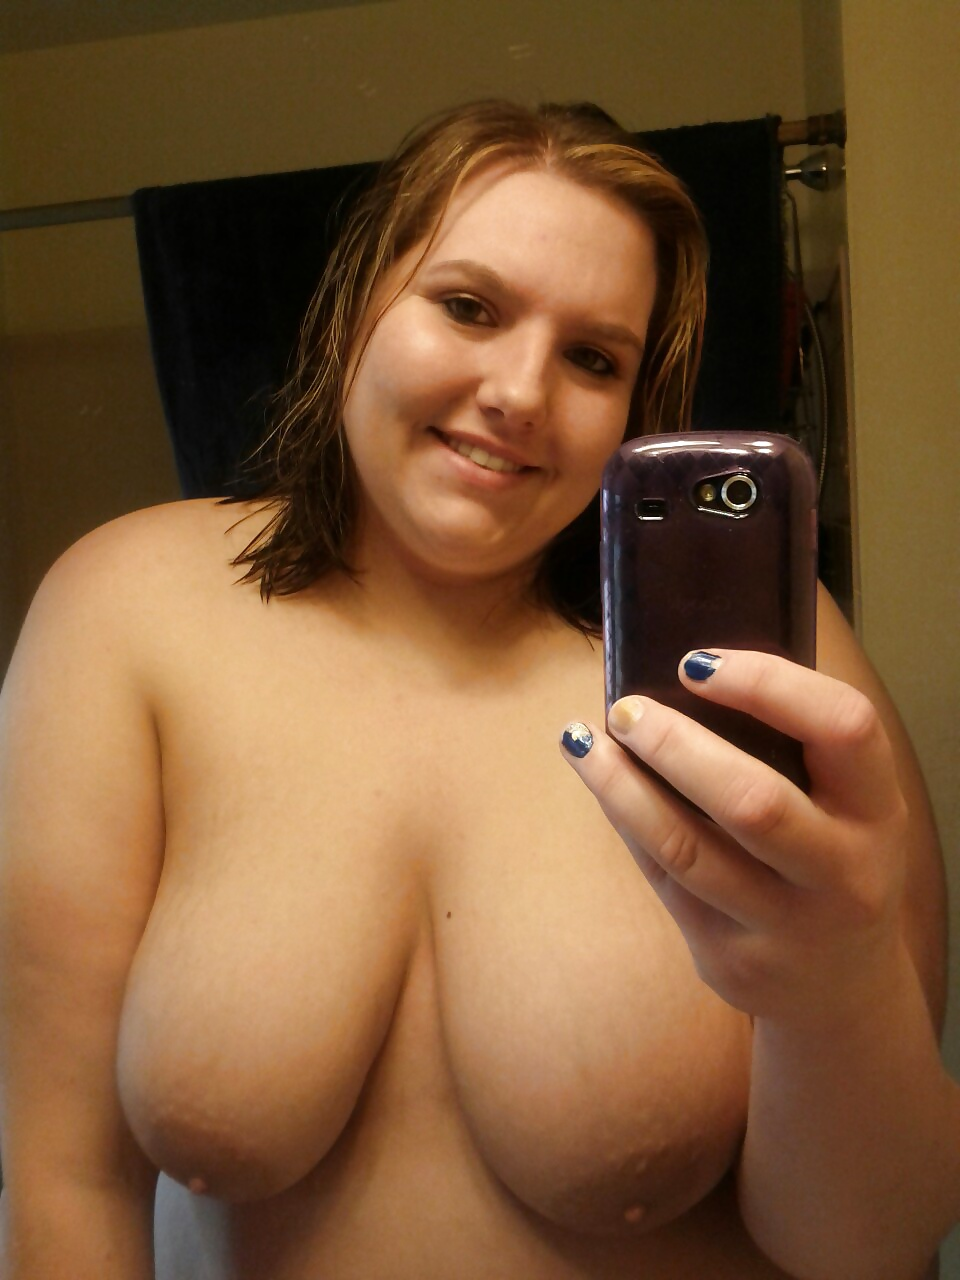 Naked selfie plump, school girls hot